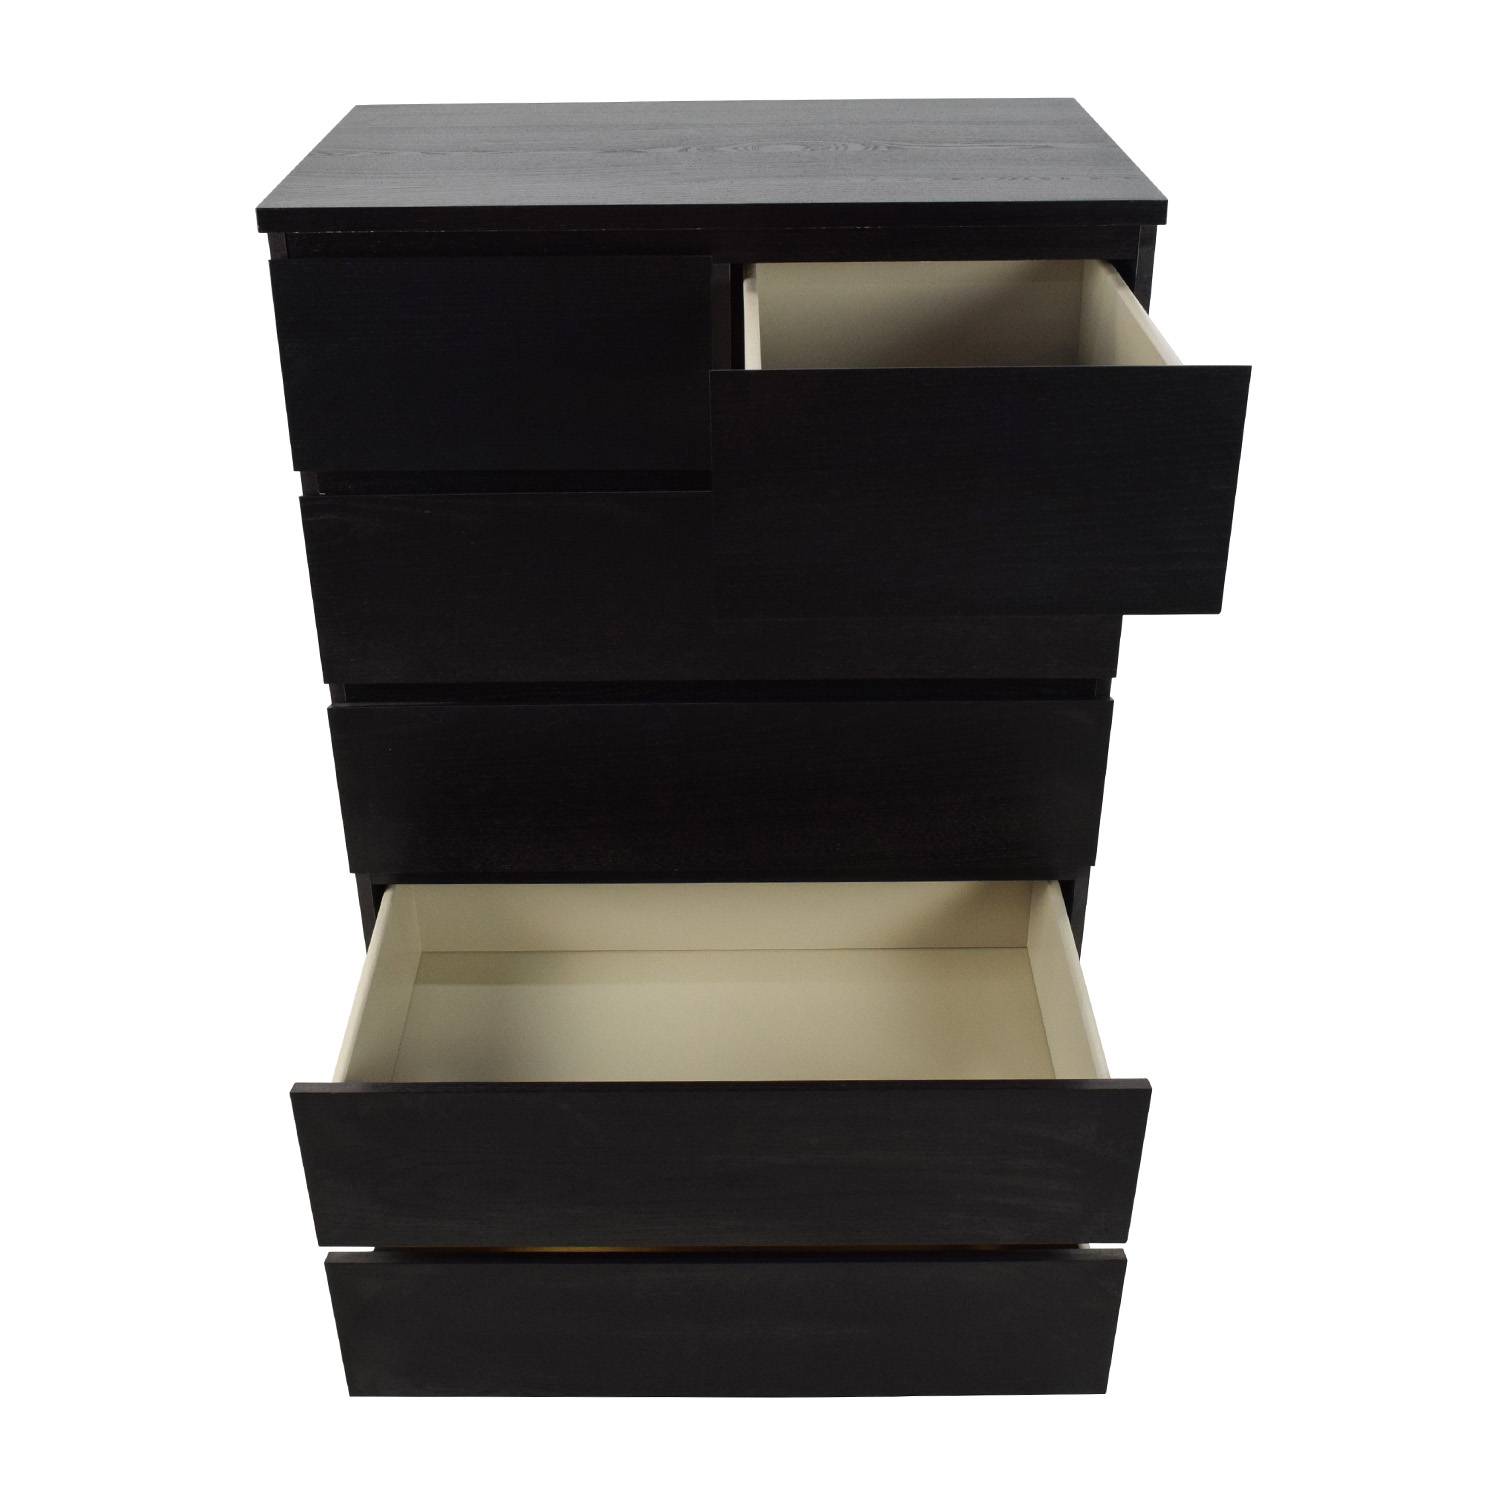 66 off ikea ikea malm dresser storage. Black Bedroom Furniture Sets. Home Design Ideas